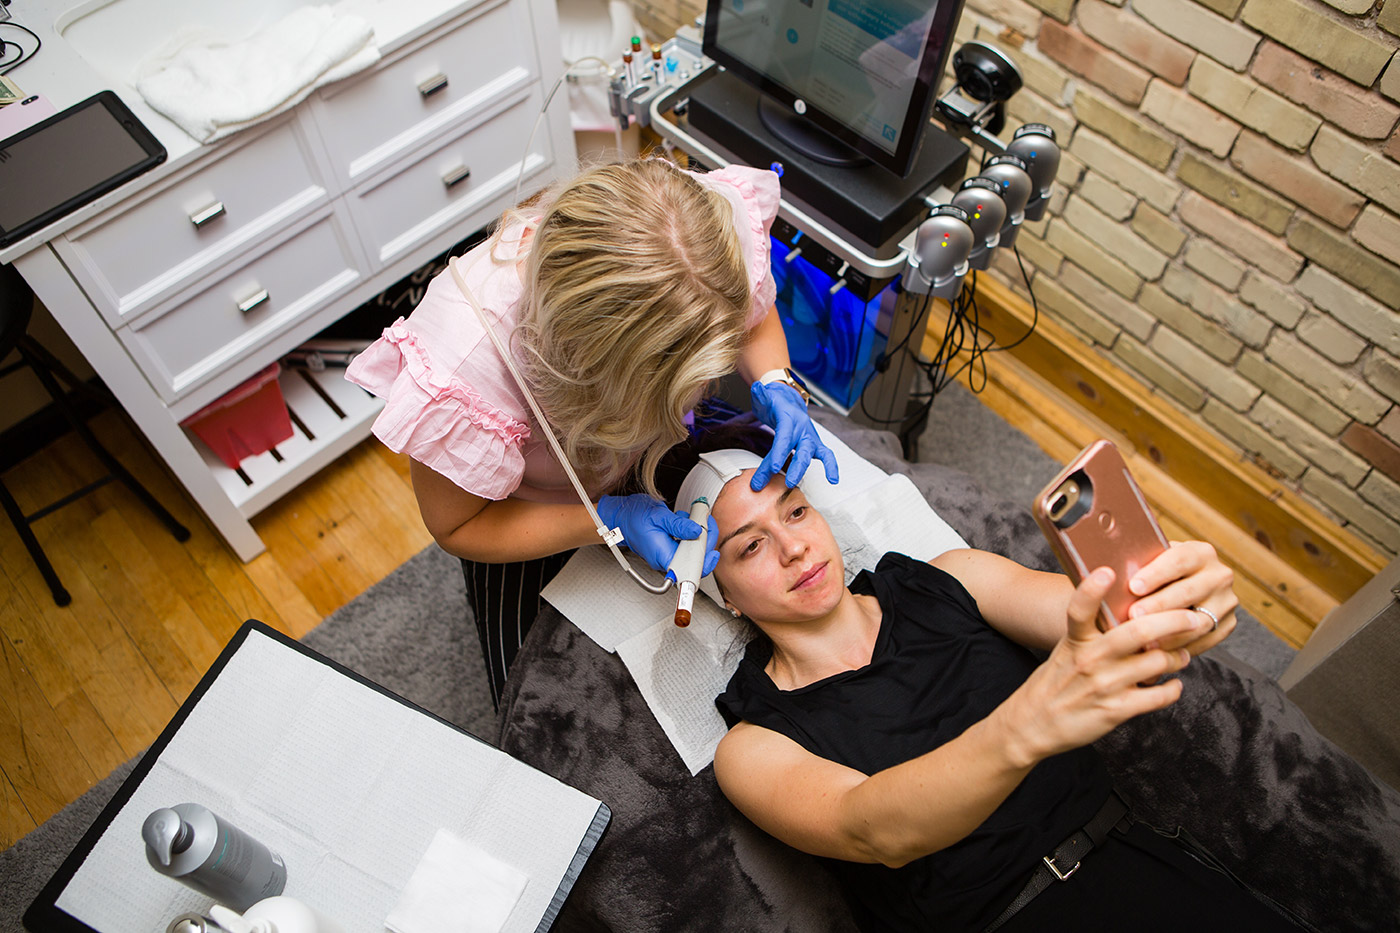 Radiance HydraFacial Tondue Medical Spa | The HSS Feed